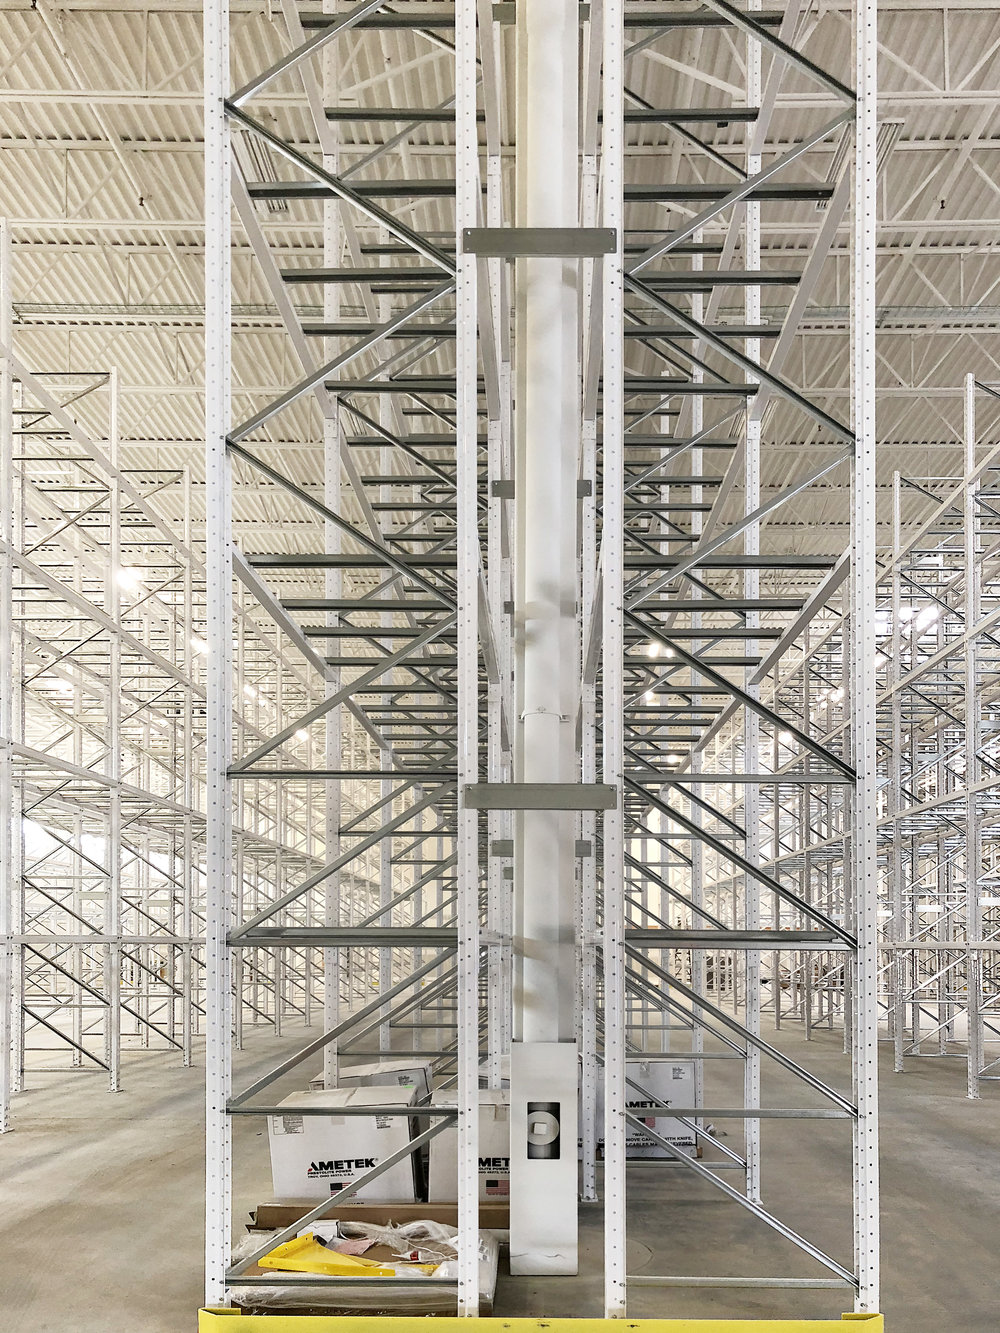 Beautiful, gleaming and white, the pallet the merchandise shelving is a geometric site to behold. It's also a major obstacle to accessing the ceilings, so it was staggered with the other installs to avoid conflict.